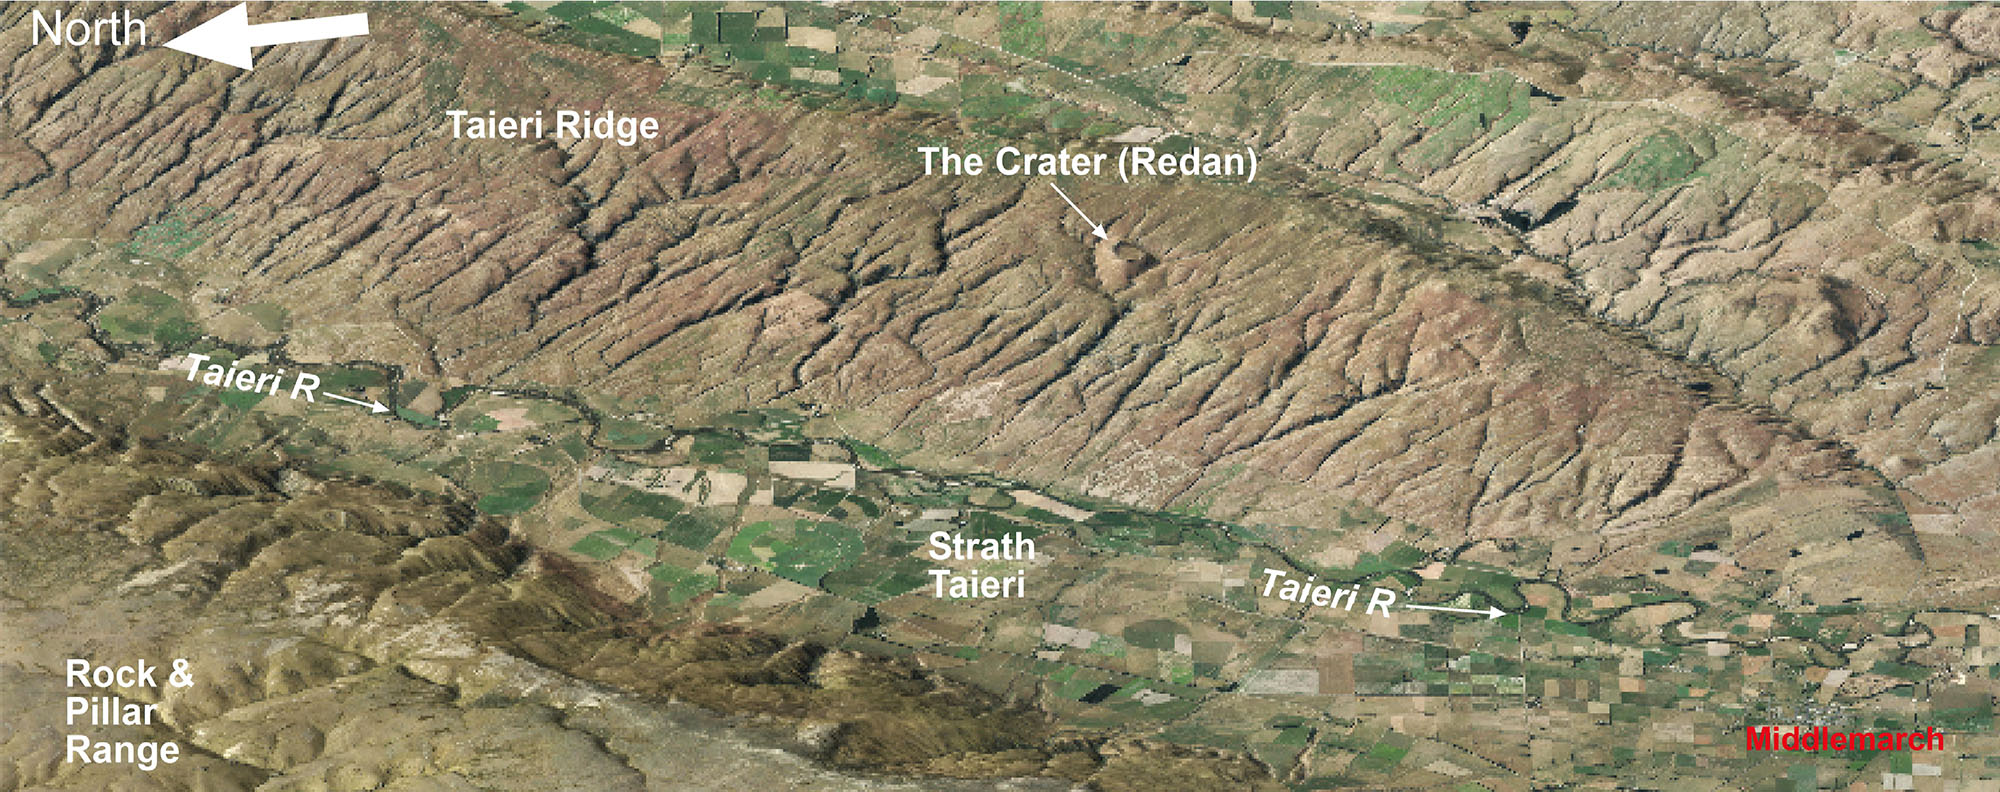 Oblique View Of The Strath Taieri Basin And Middlemarch Township Between Two Actively Rising Schist